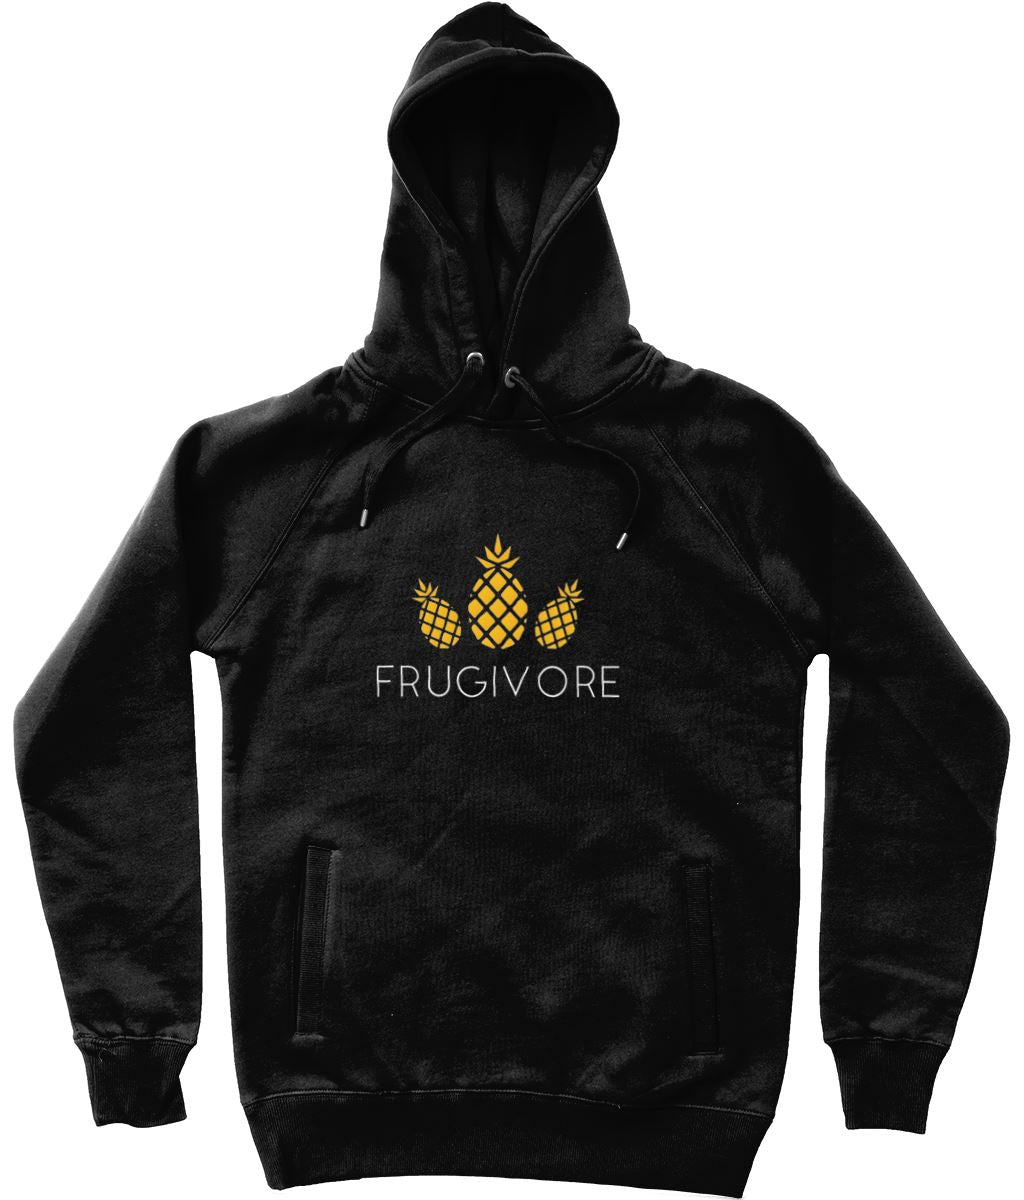 """Frugivore"" Vegan Hoodie - 100% Organic Cotton (Unisex) Clothing Vegan Original Black X-Small"